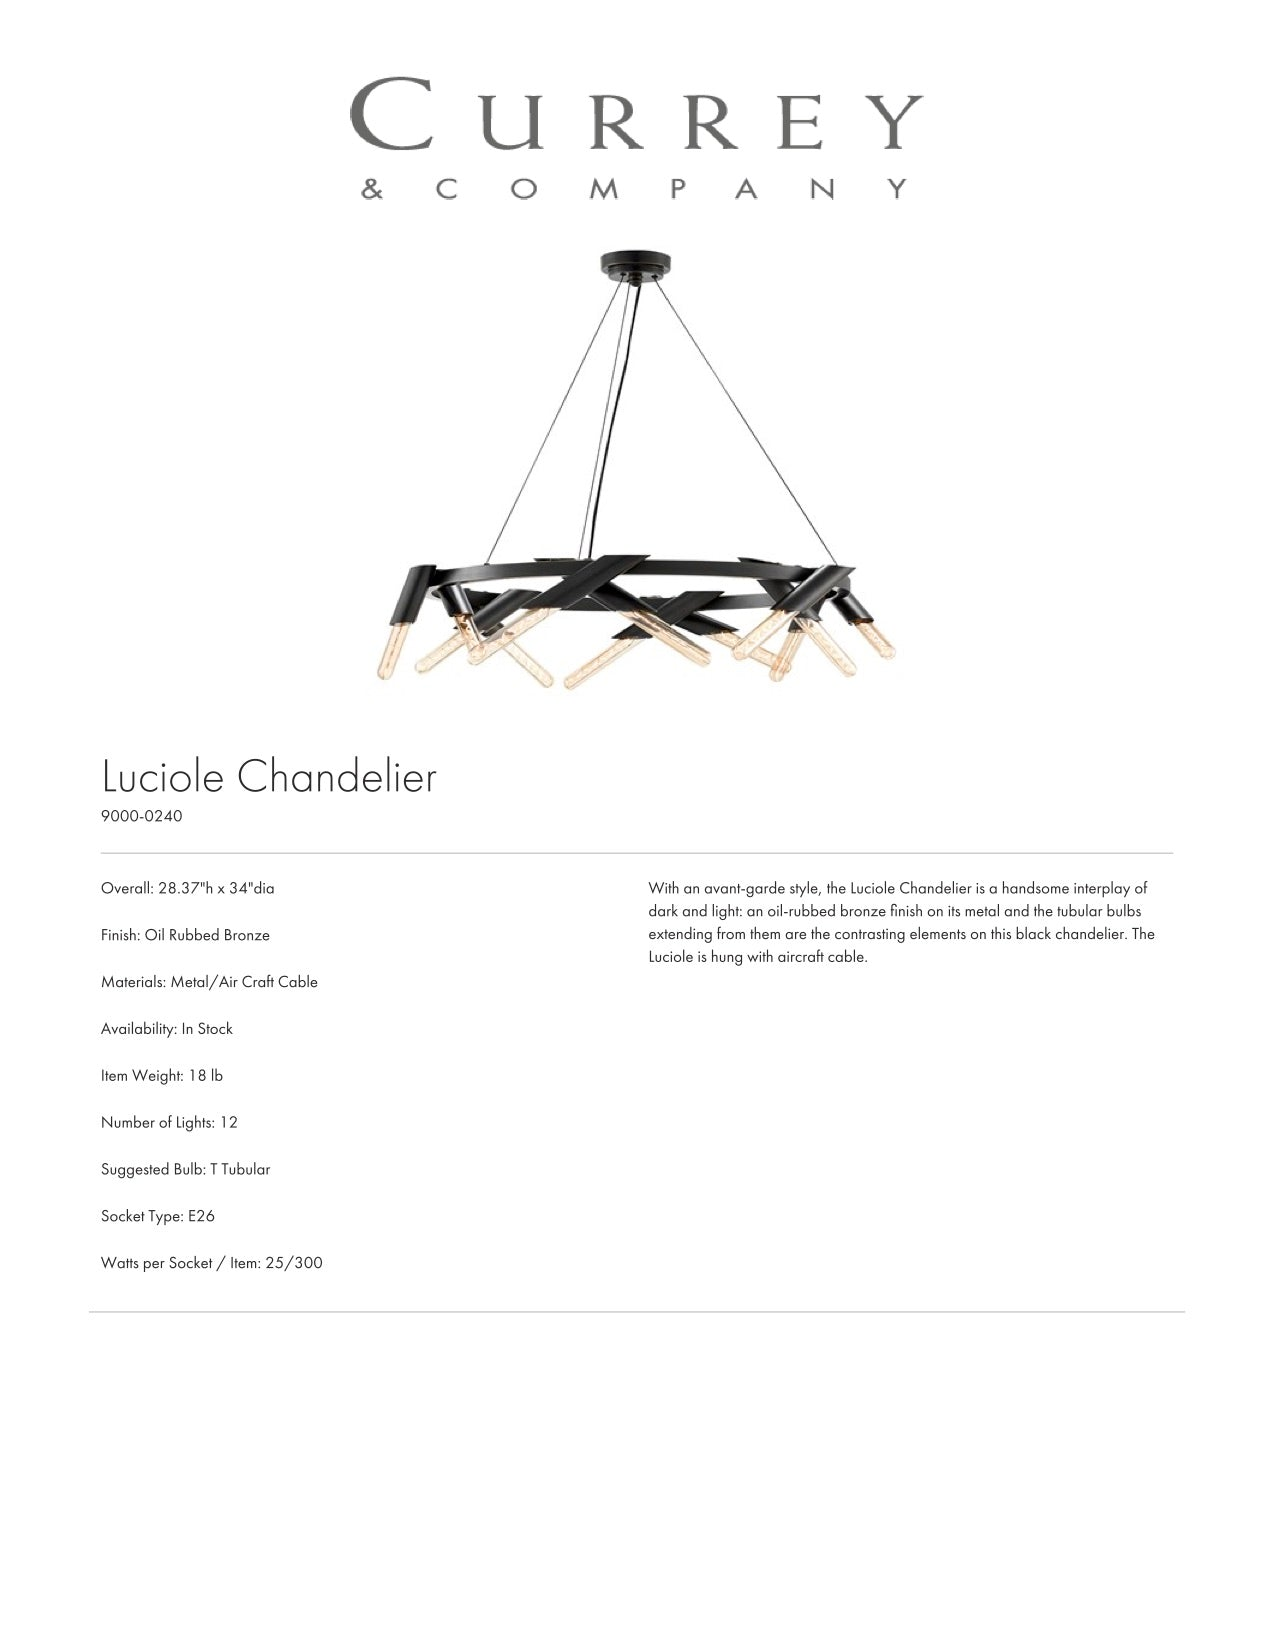 Currey & Company Luciole Chandelier Tearsheet